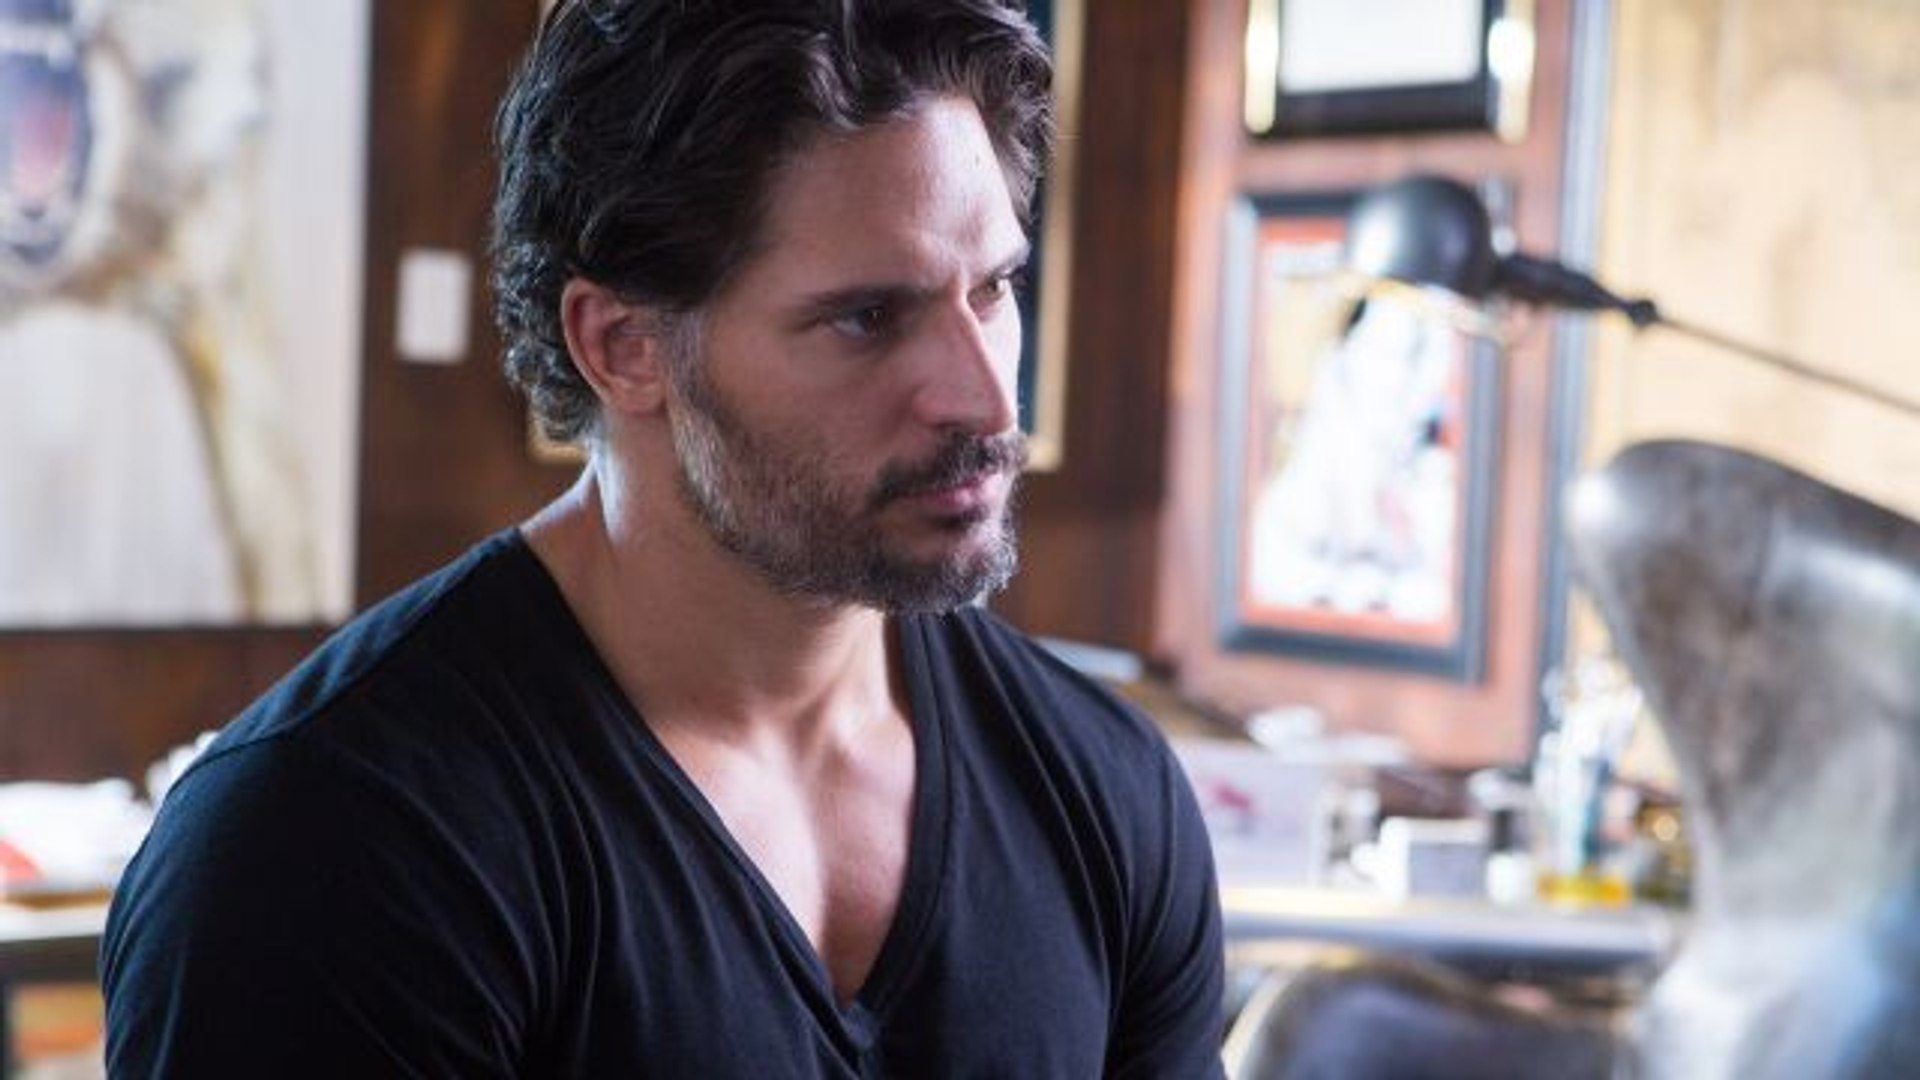 #NoSweat - Joe Manganiello Reveals His Daily Routine for Staying Focused